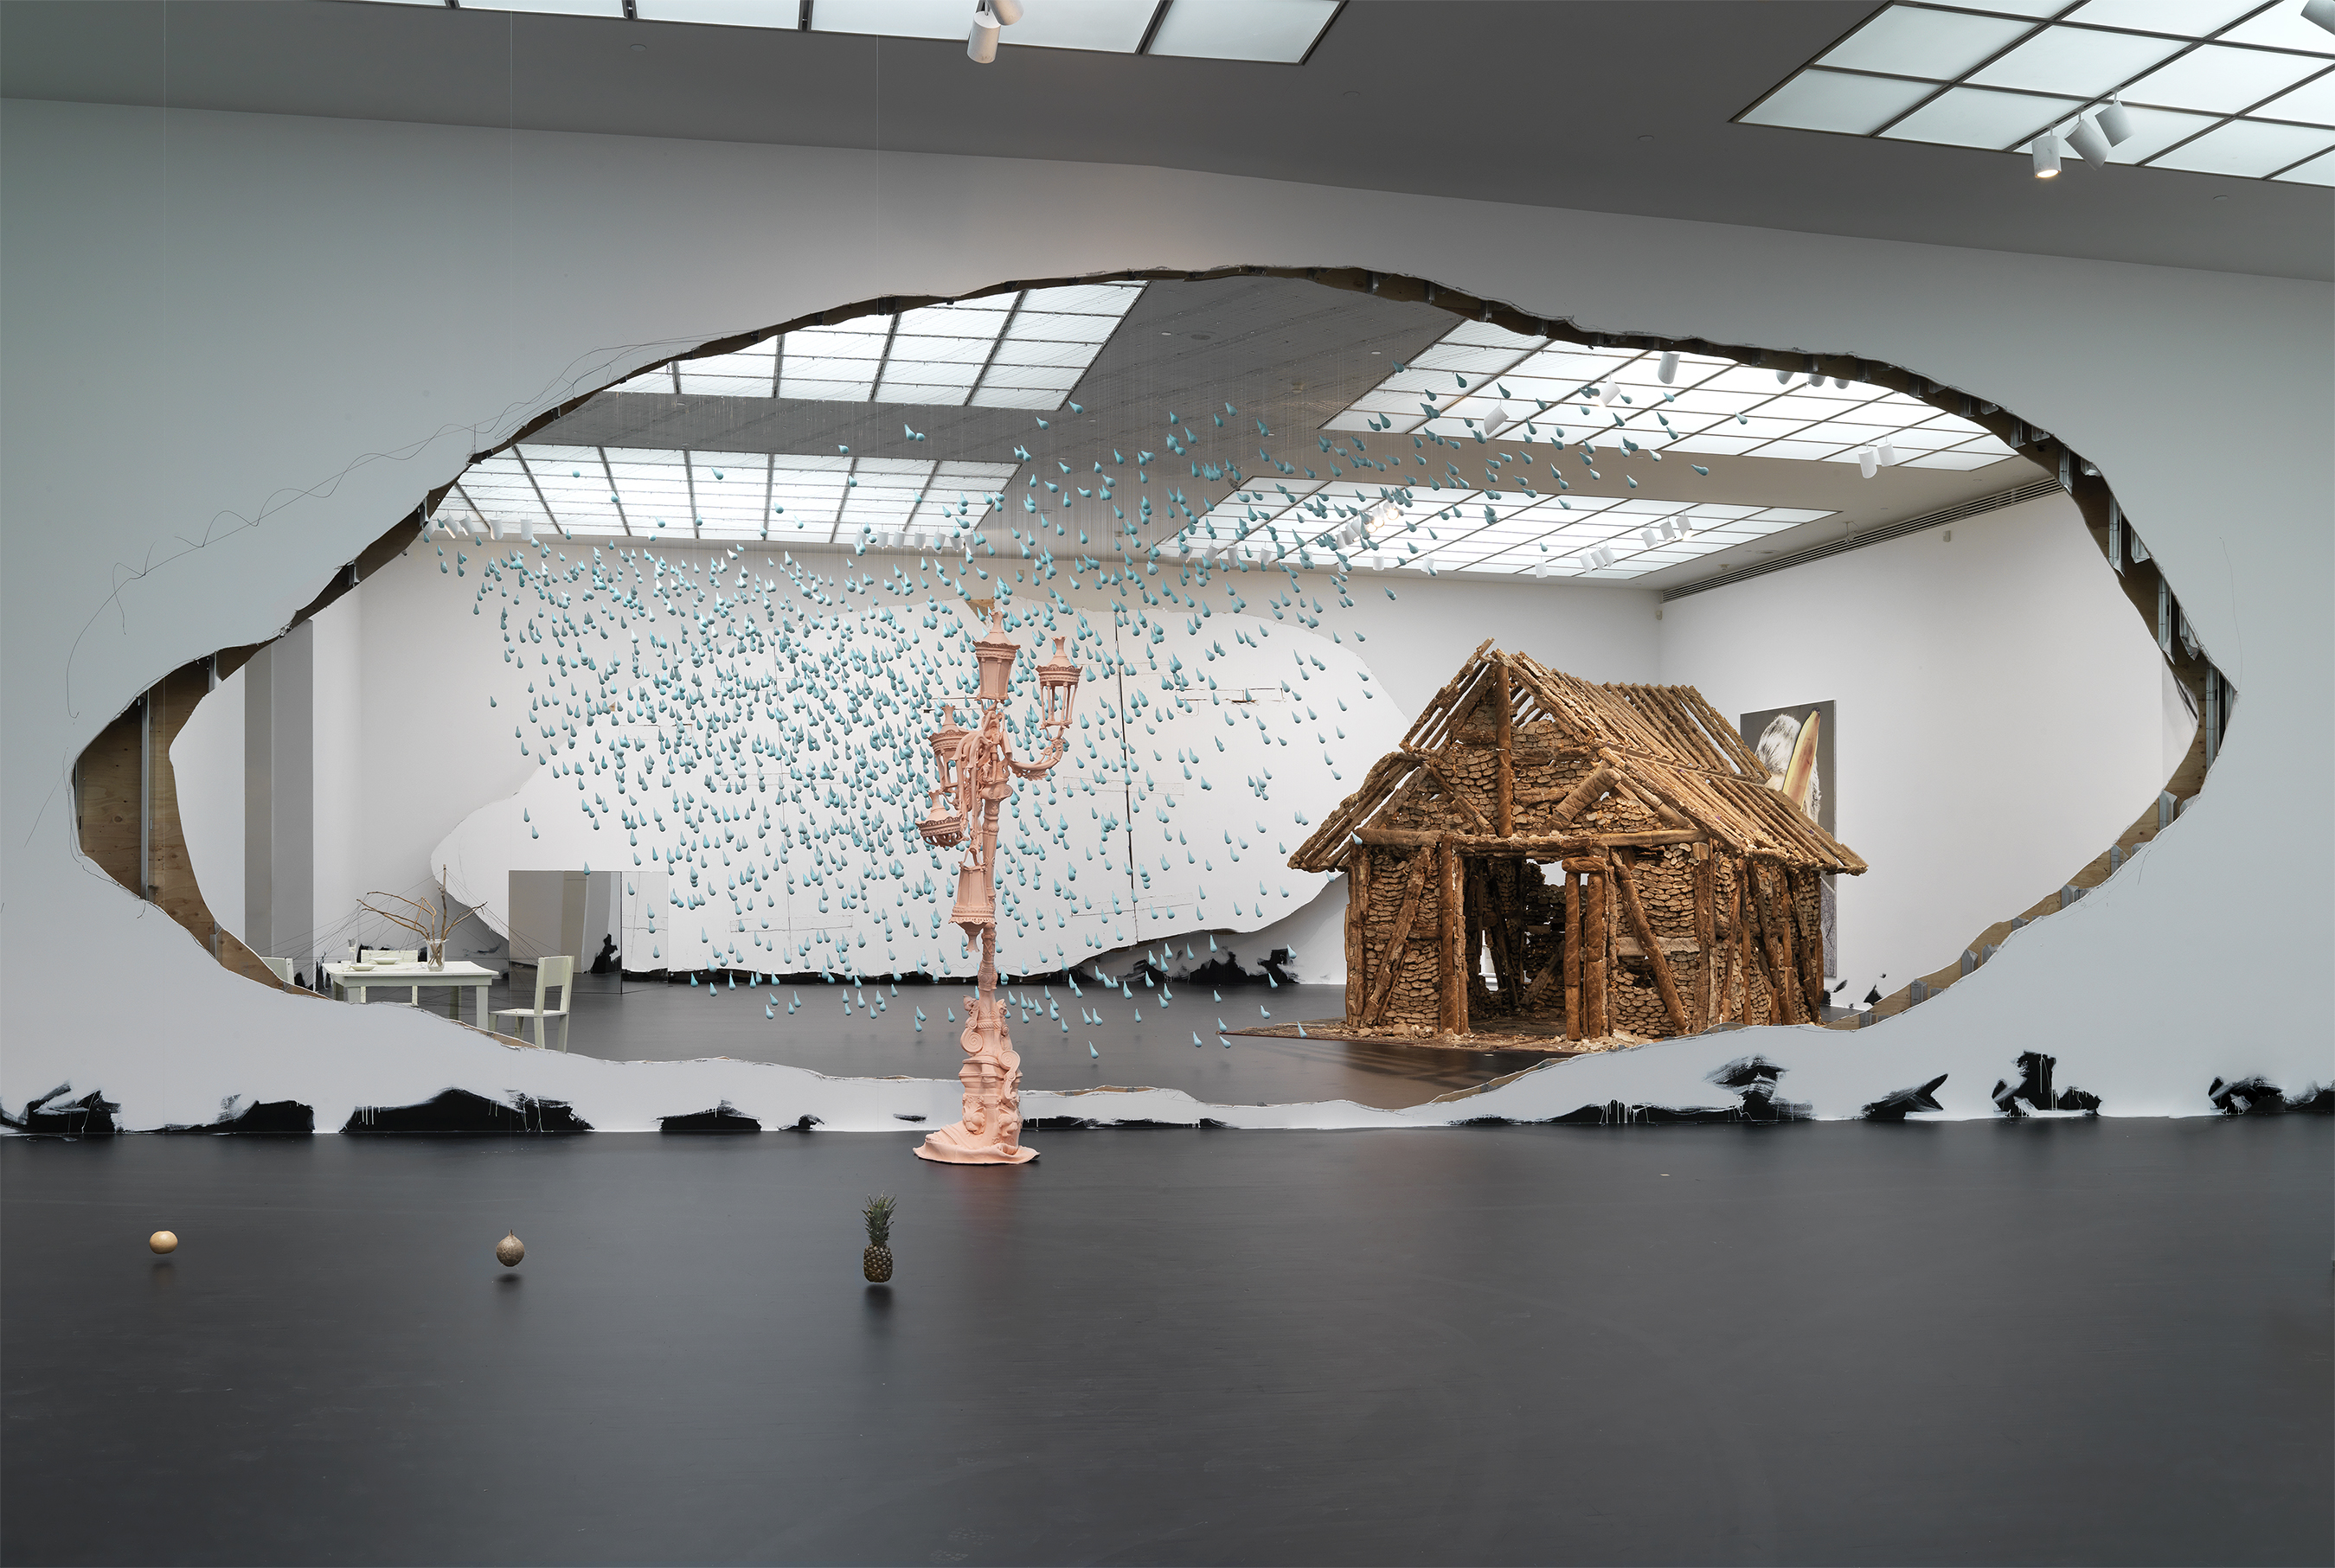 Los Angeles Urs Fisher At MOCA Through August 19th